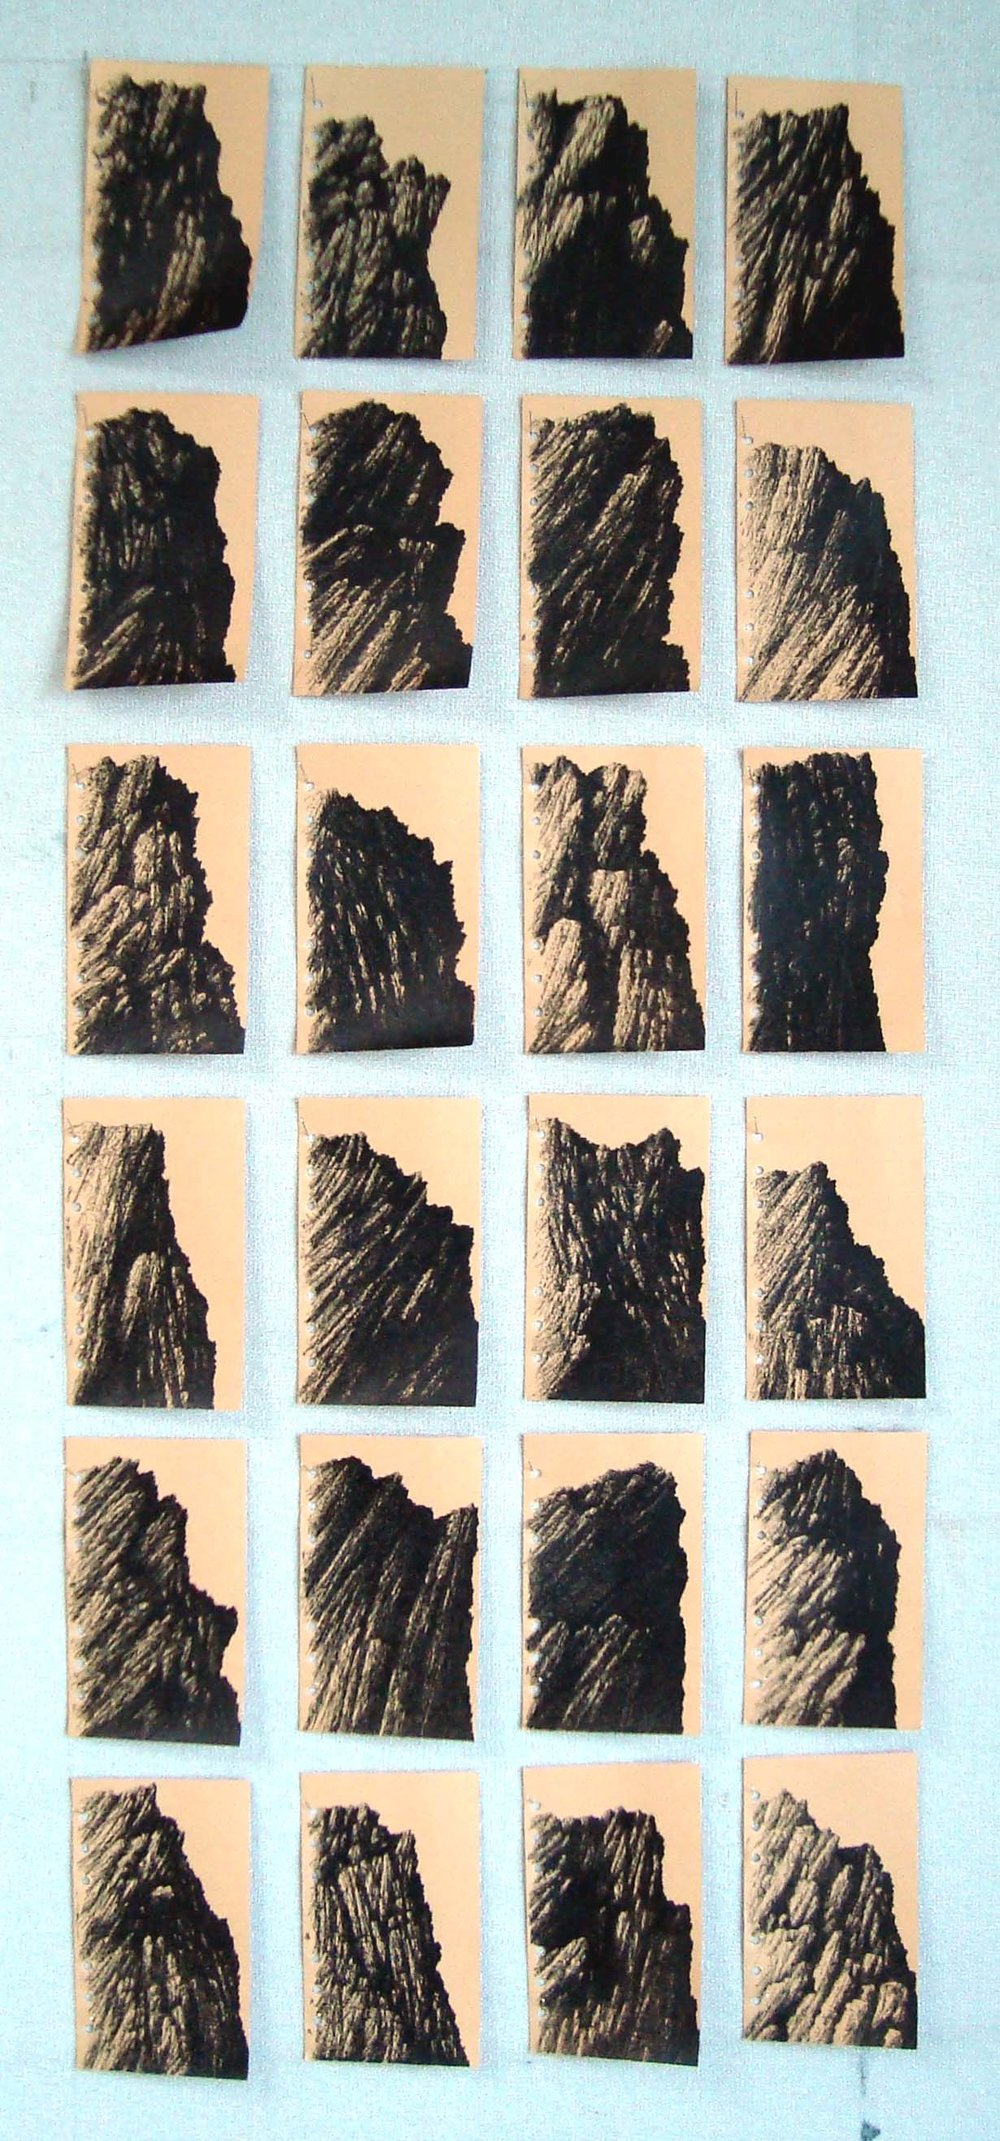 Bakhtyar Kaftan,  Only you Mountains , 2018, ink on paper, 10.7 x 7.5 cm (23 works)